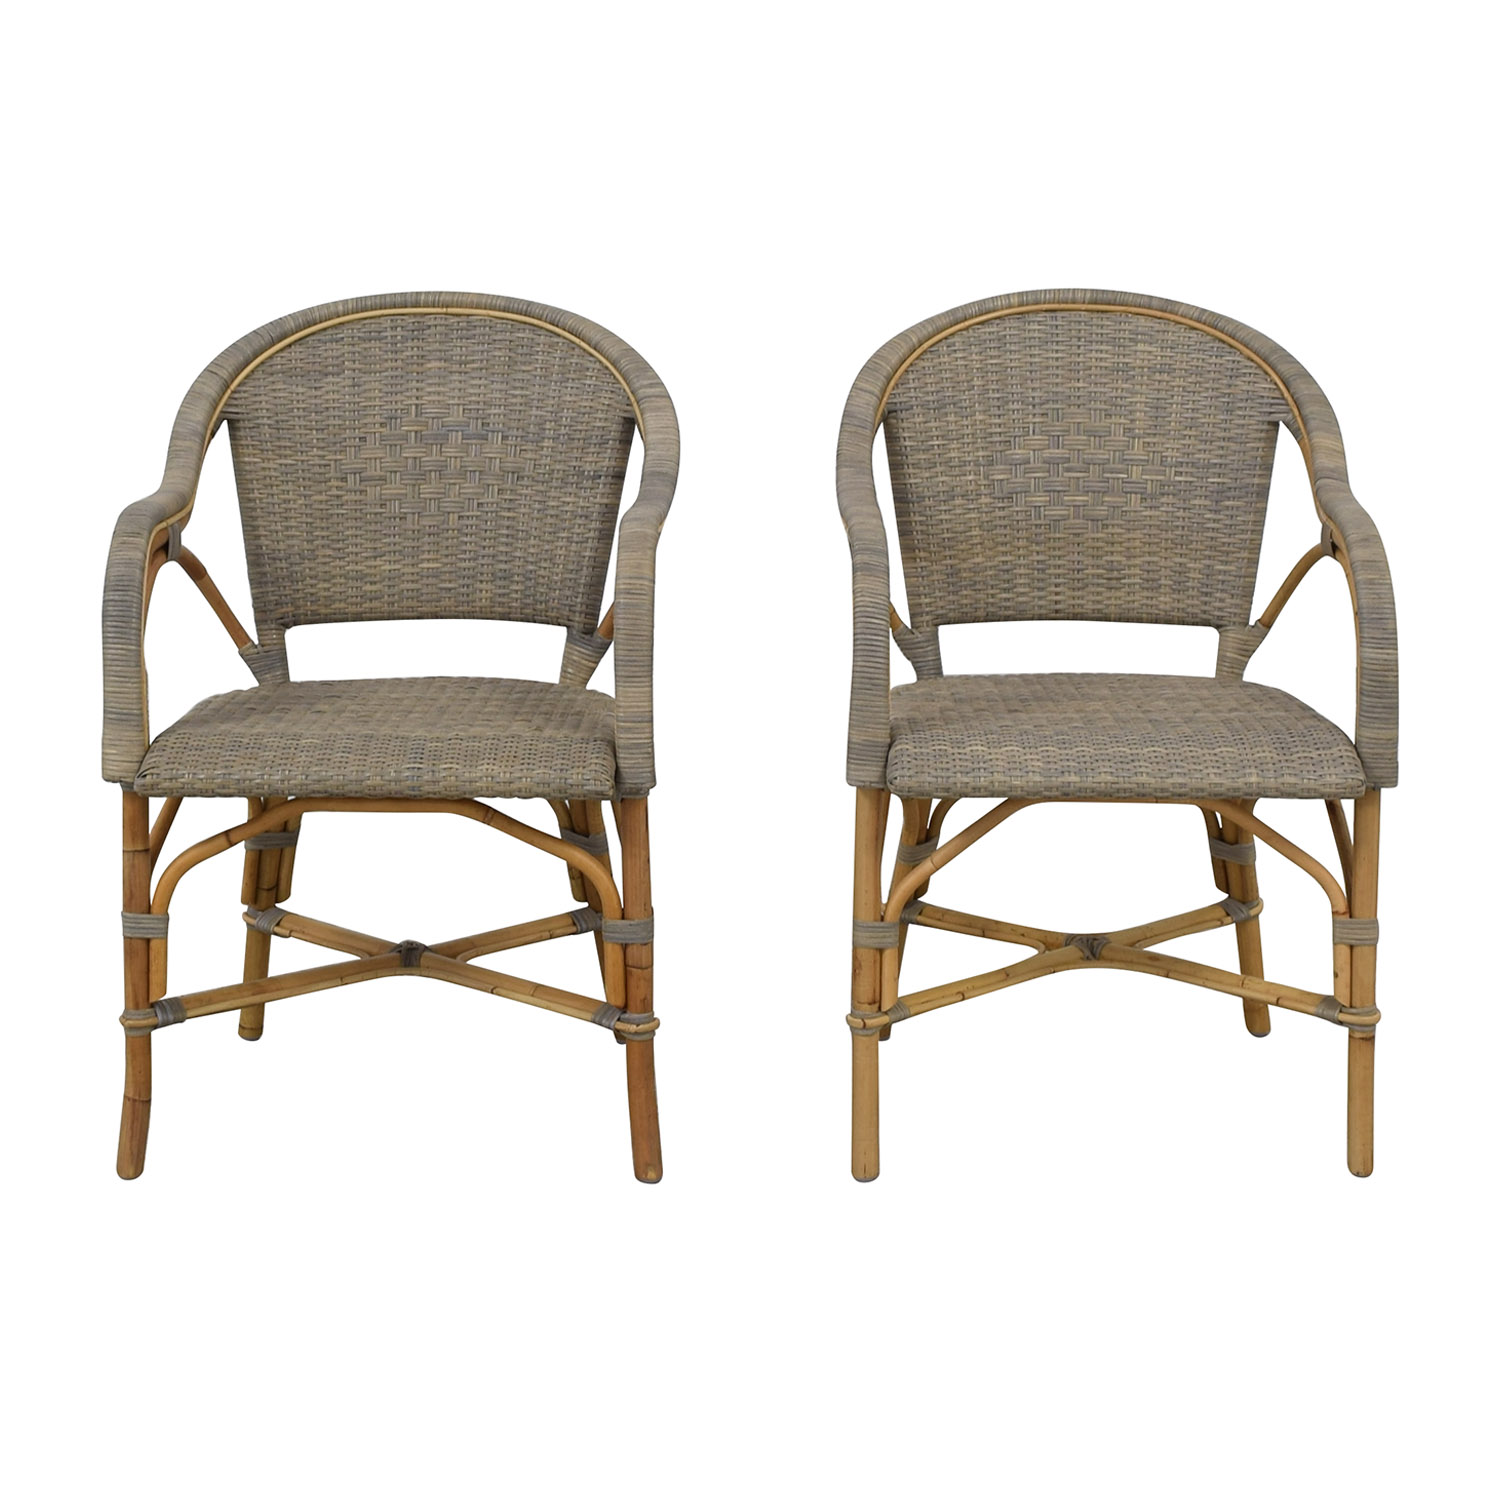 Serena & Lily Sunwashed Riviera Armchairs Serena & Lily